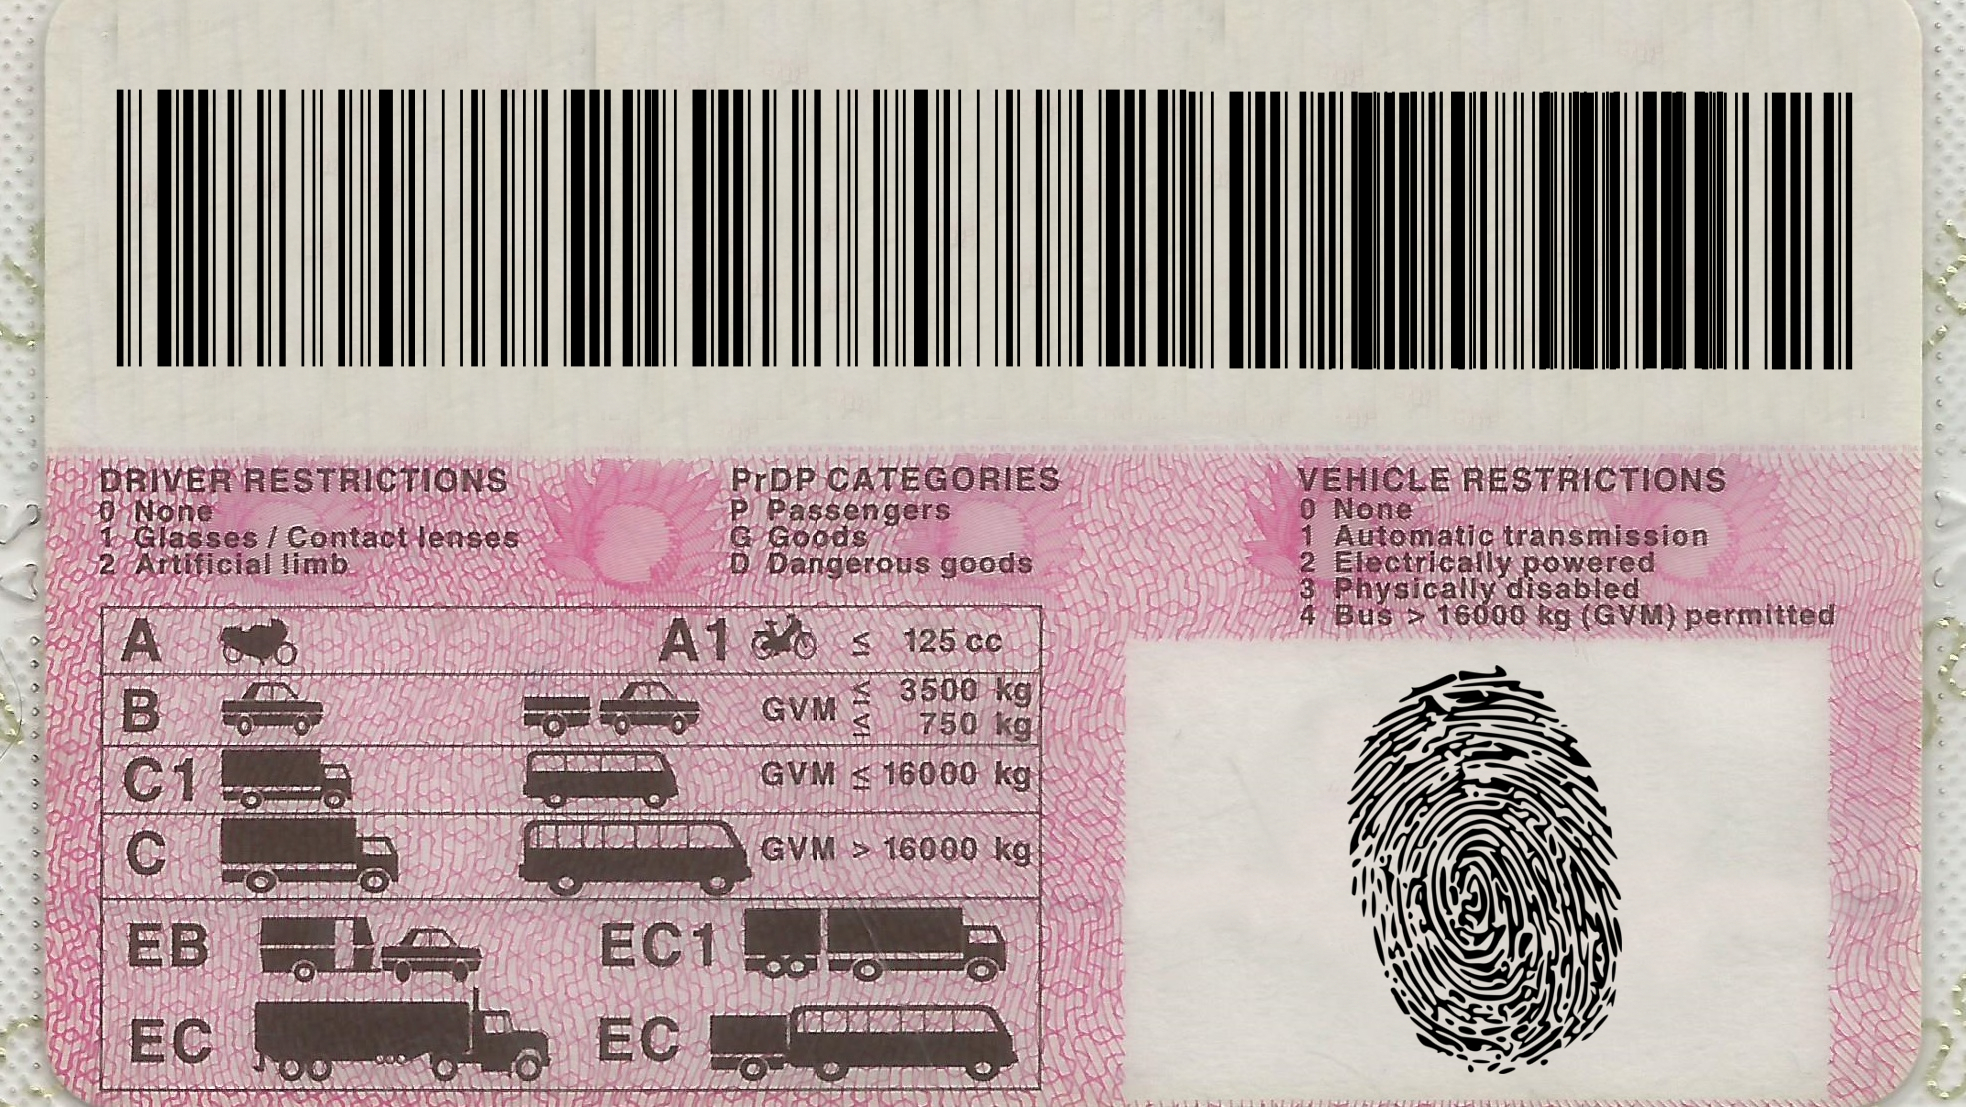 Renewing your South African driver's licence: How to book